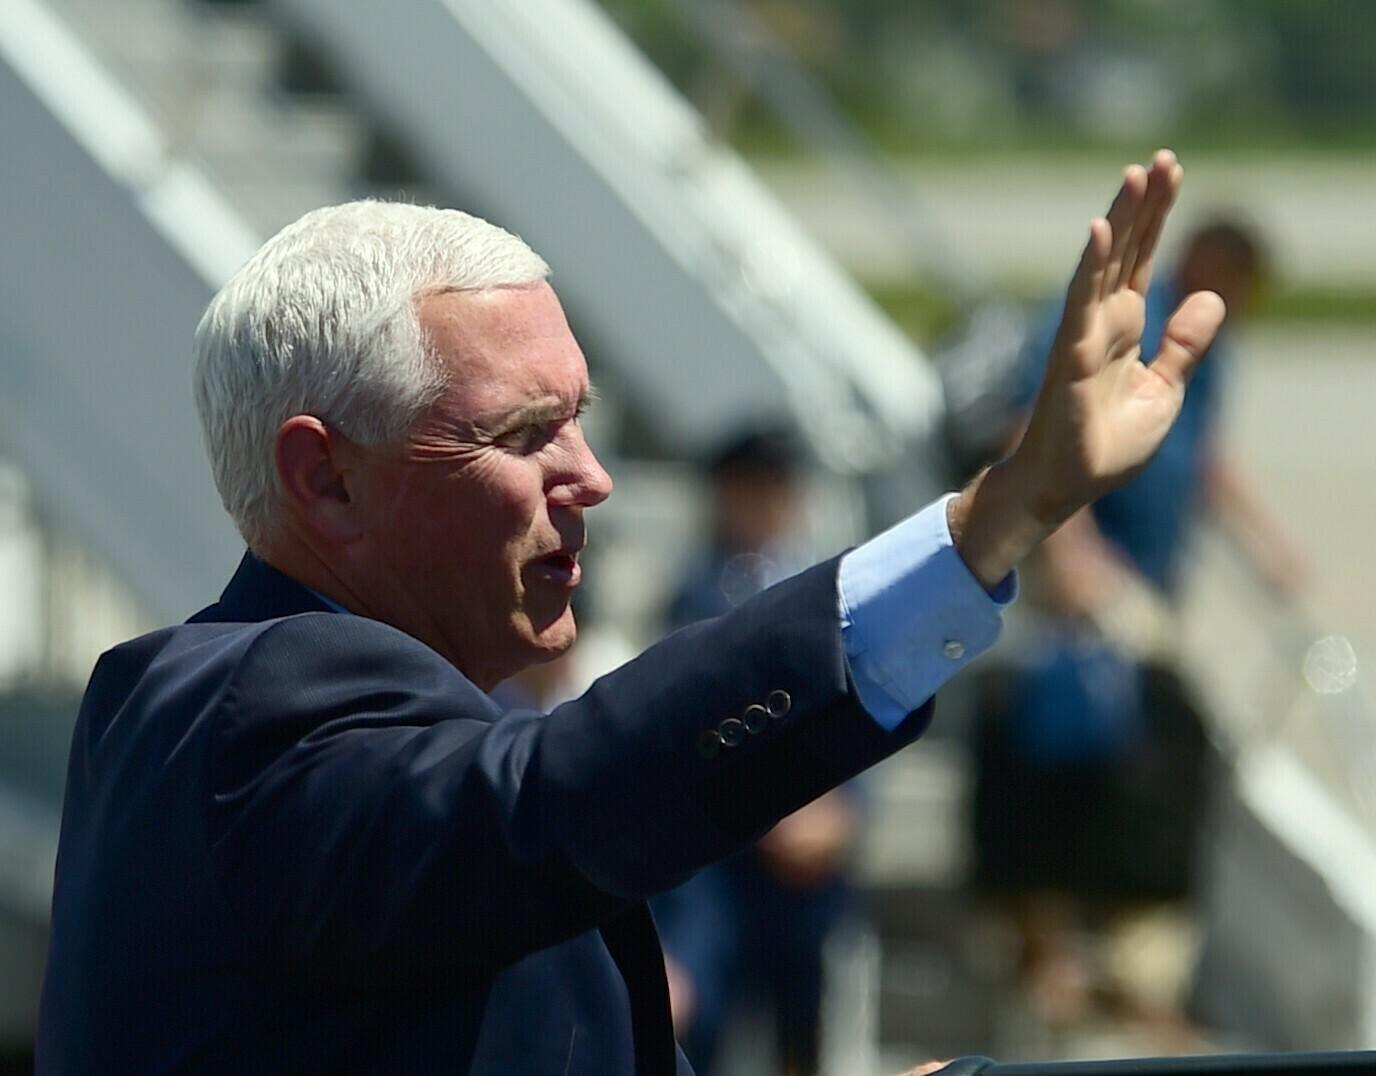 The Latest: Pence promotes plan to reduce $12B parks backlog